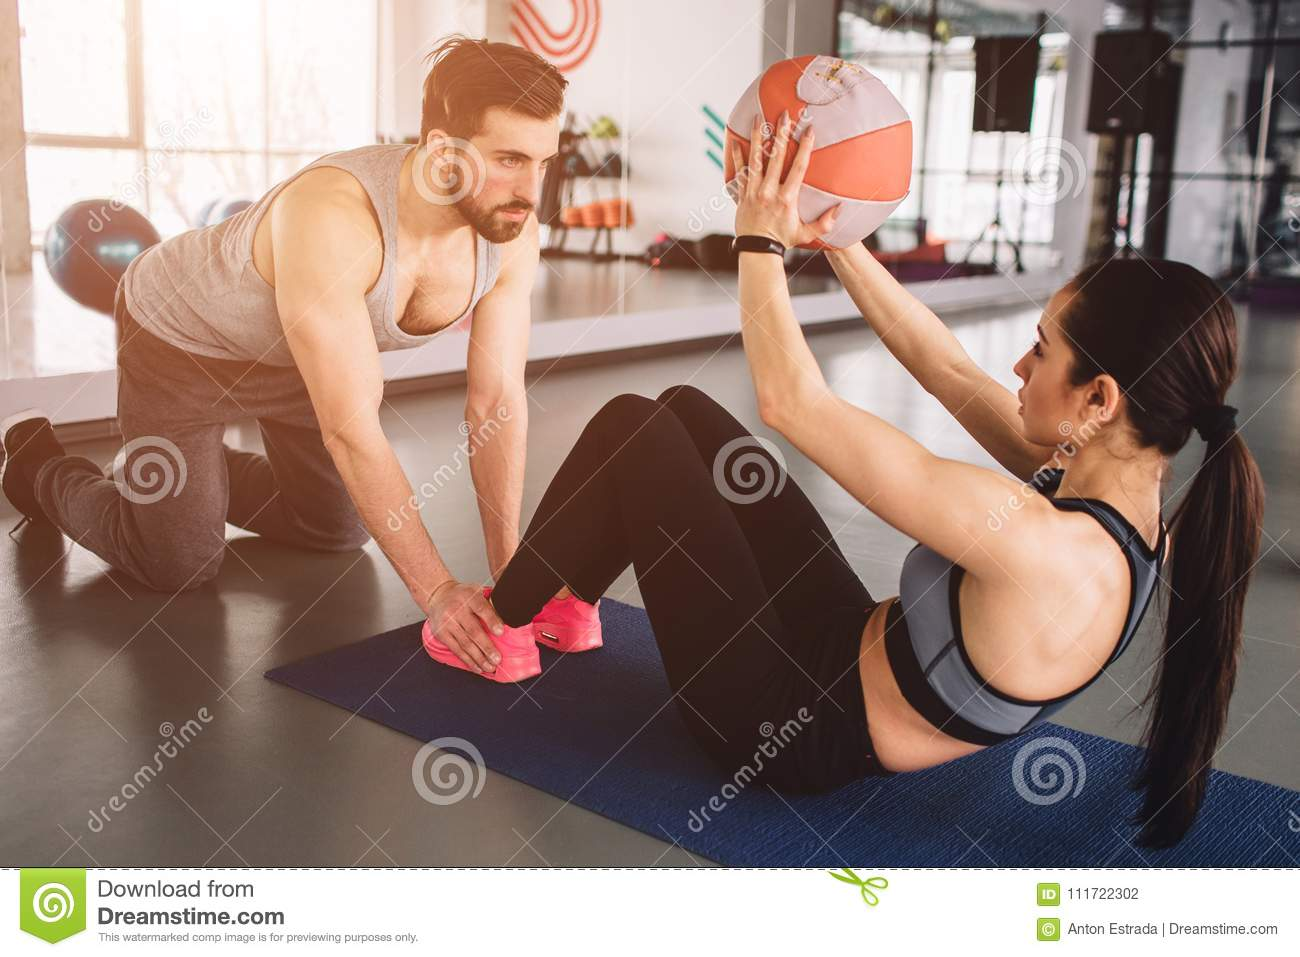 A picture of girl doing some abs exercise with the ball while her sport partner is holding her legs down on the floor